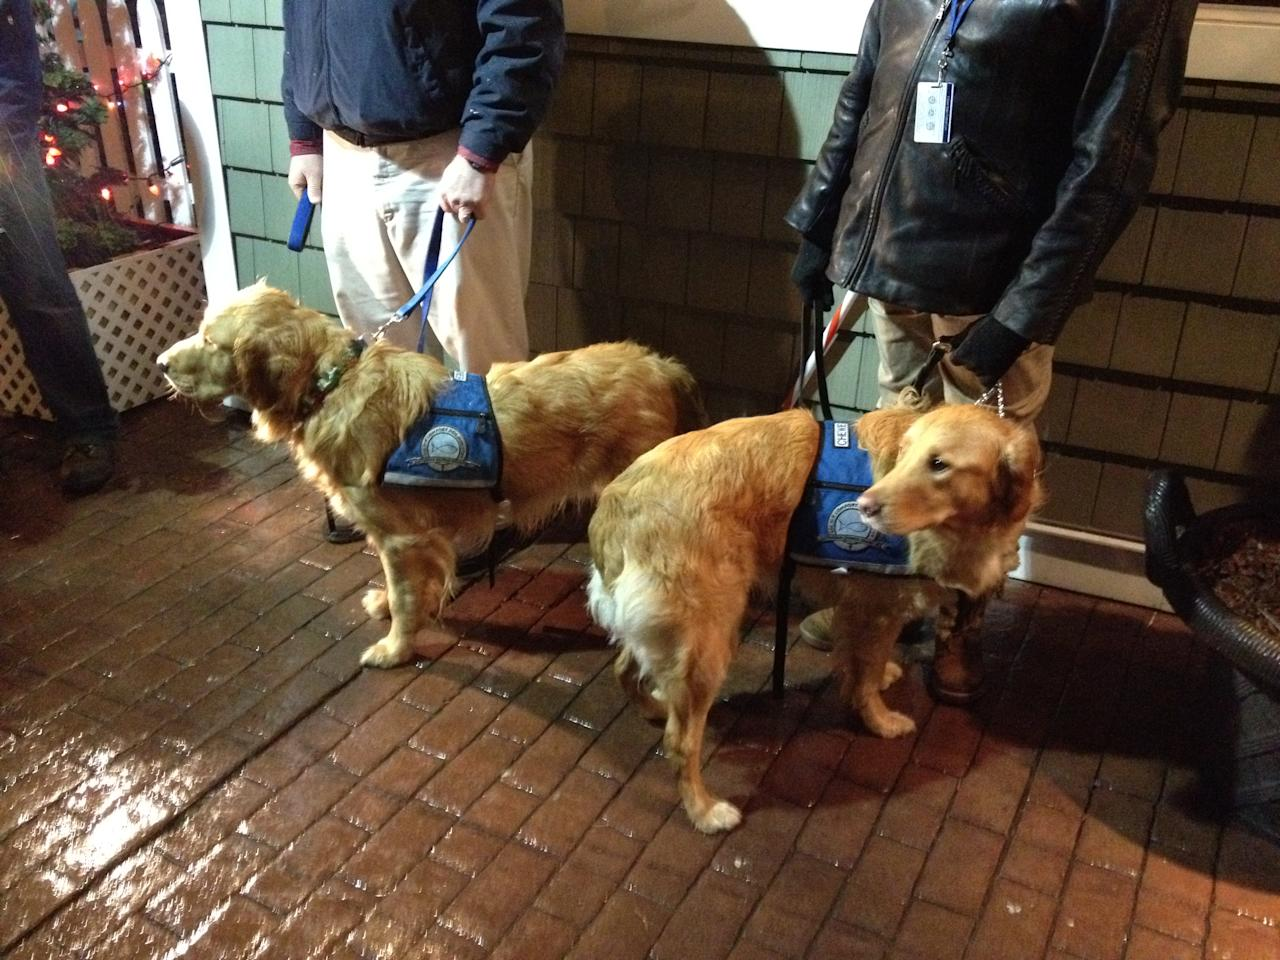 <p>Golden retrievers sent from Illinois to comfort families of the Sandy Hook Elementary School shooting victims seen in Newtown, Conn., Dec. 15, 2012. (Dylan Stableford/Yahoo News) </p>